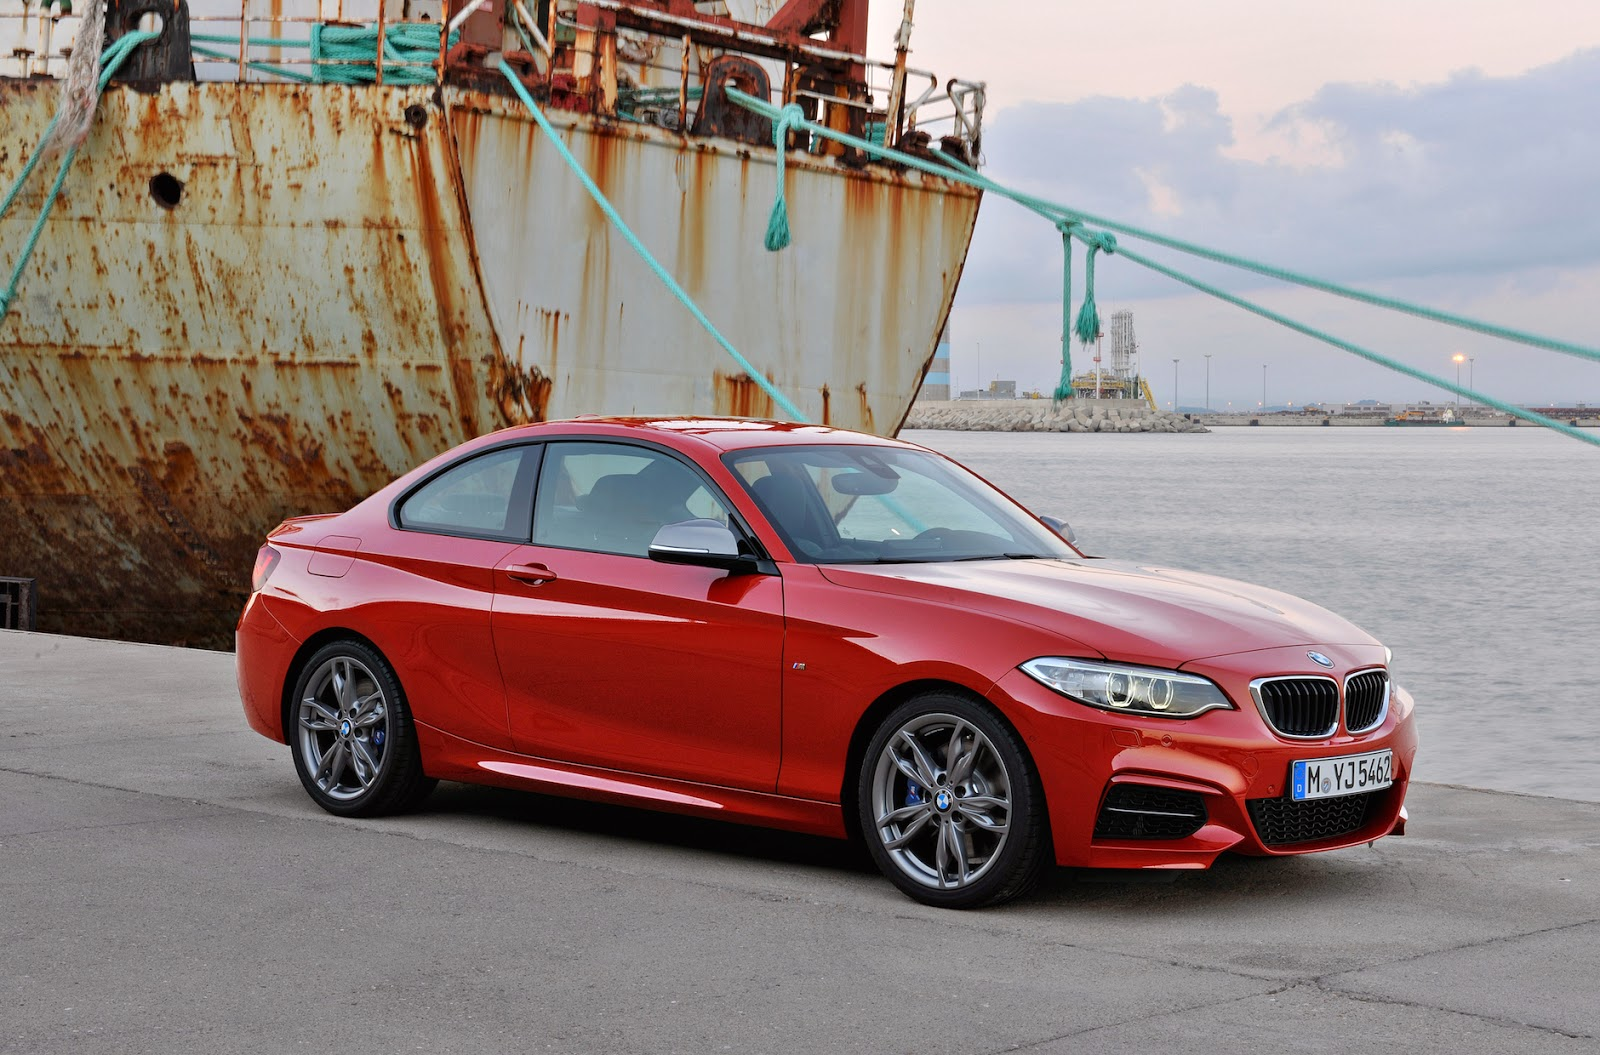 BMW M235i - 2 door coupe